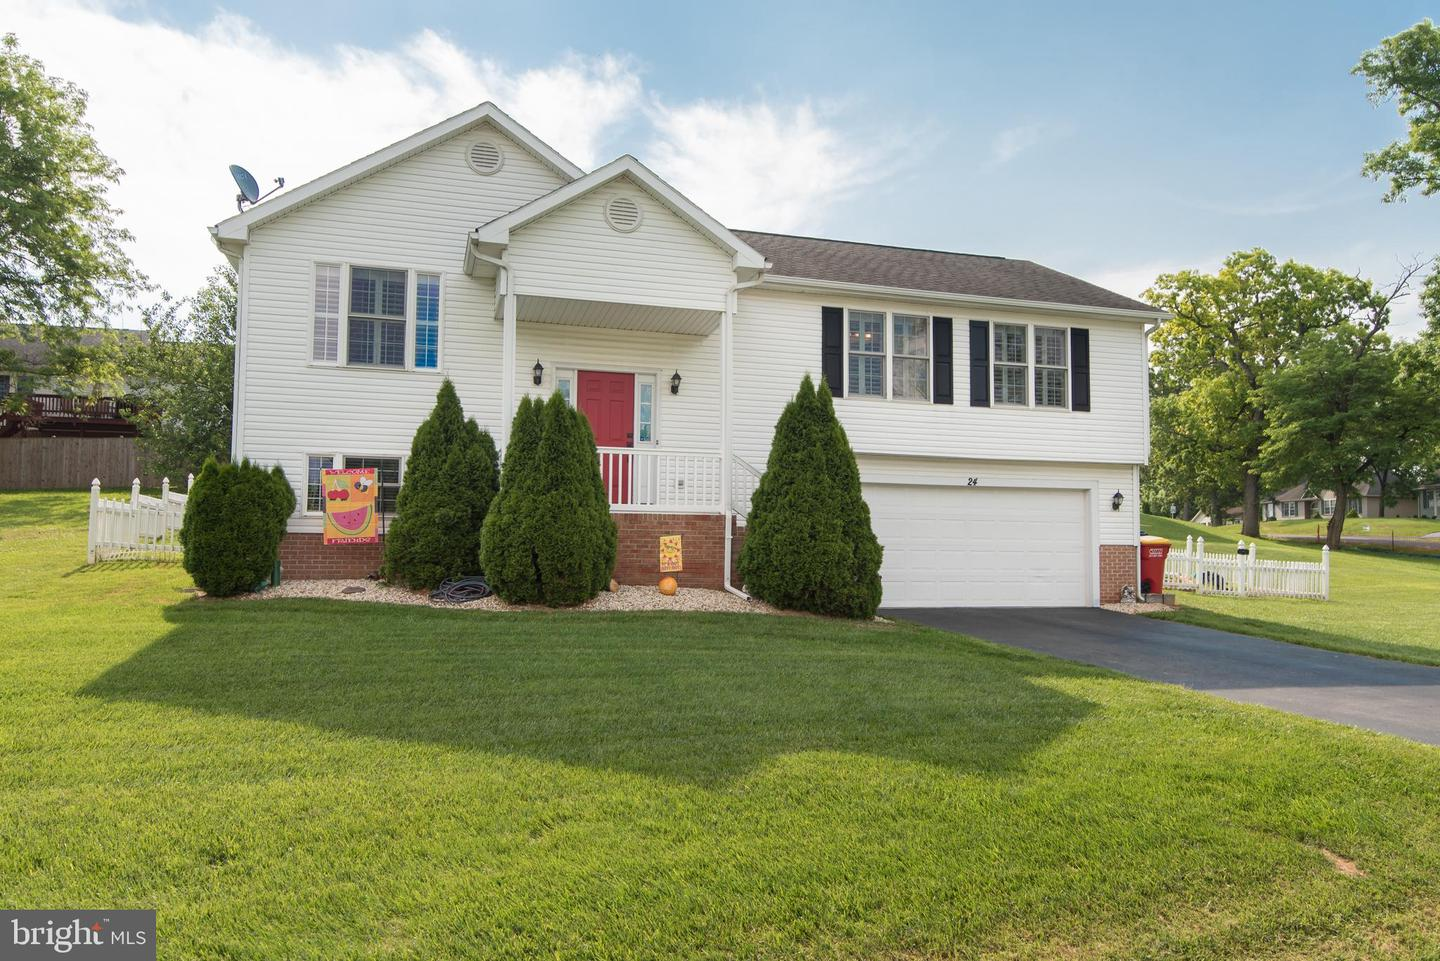 Single Family for Sale at 24 Jack Rabbit Ln Ranson, West Virginia 25438 United States